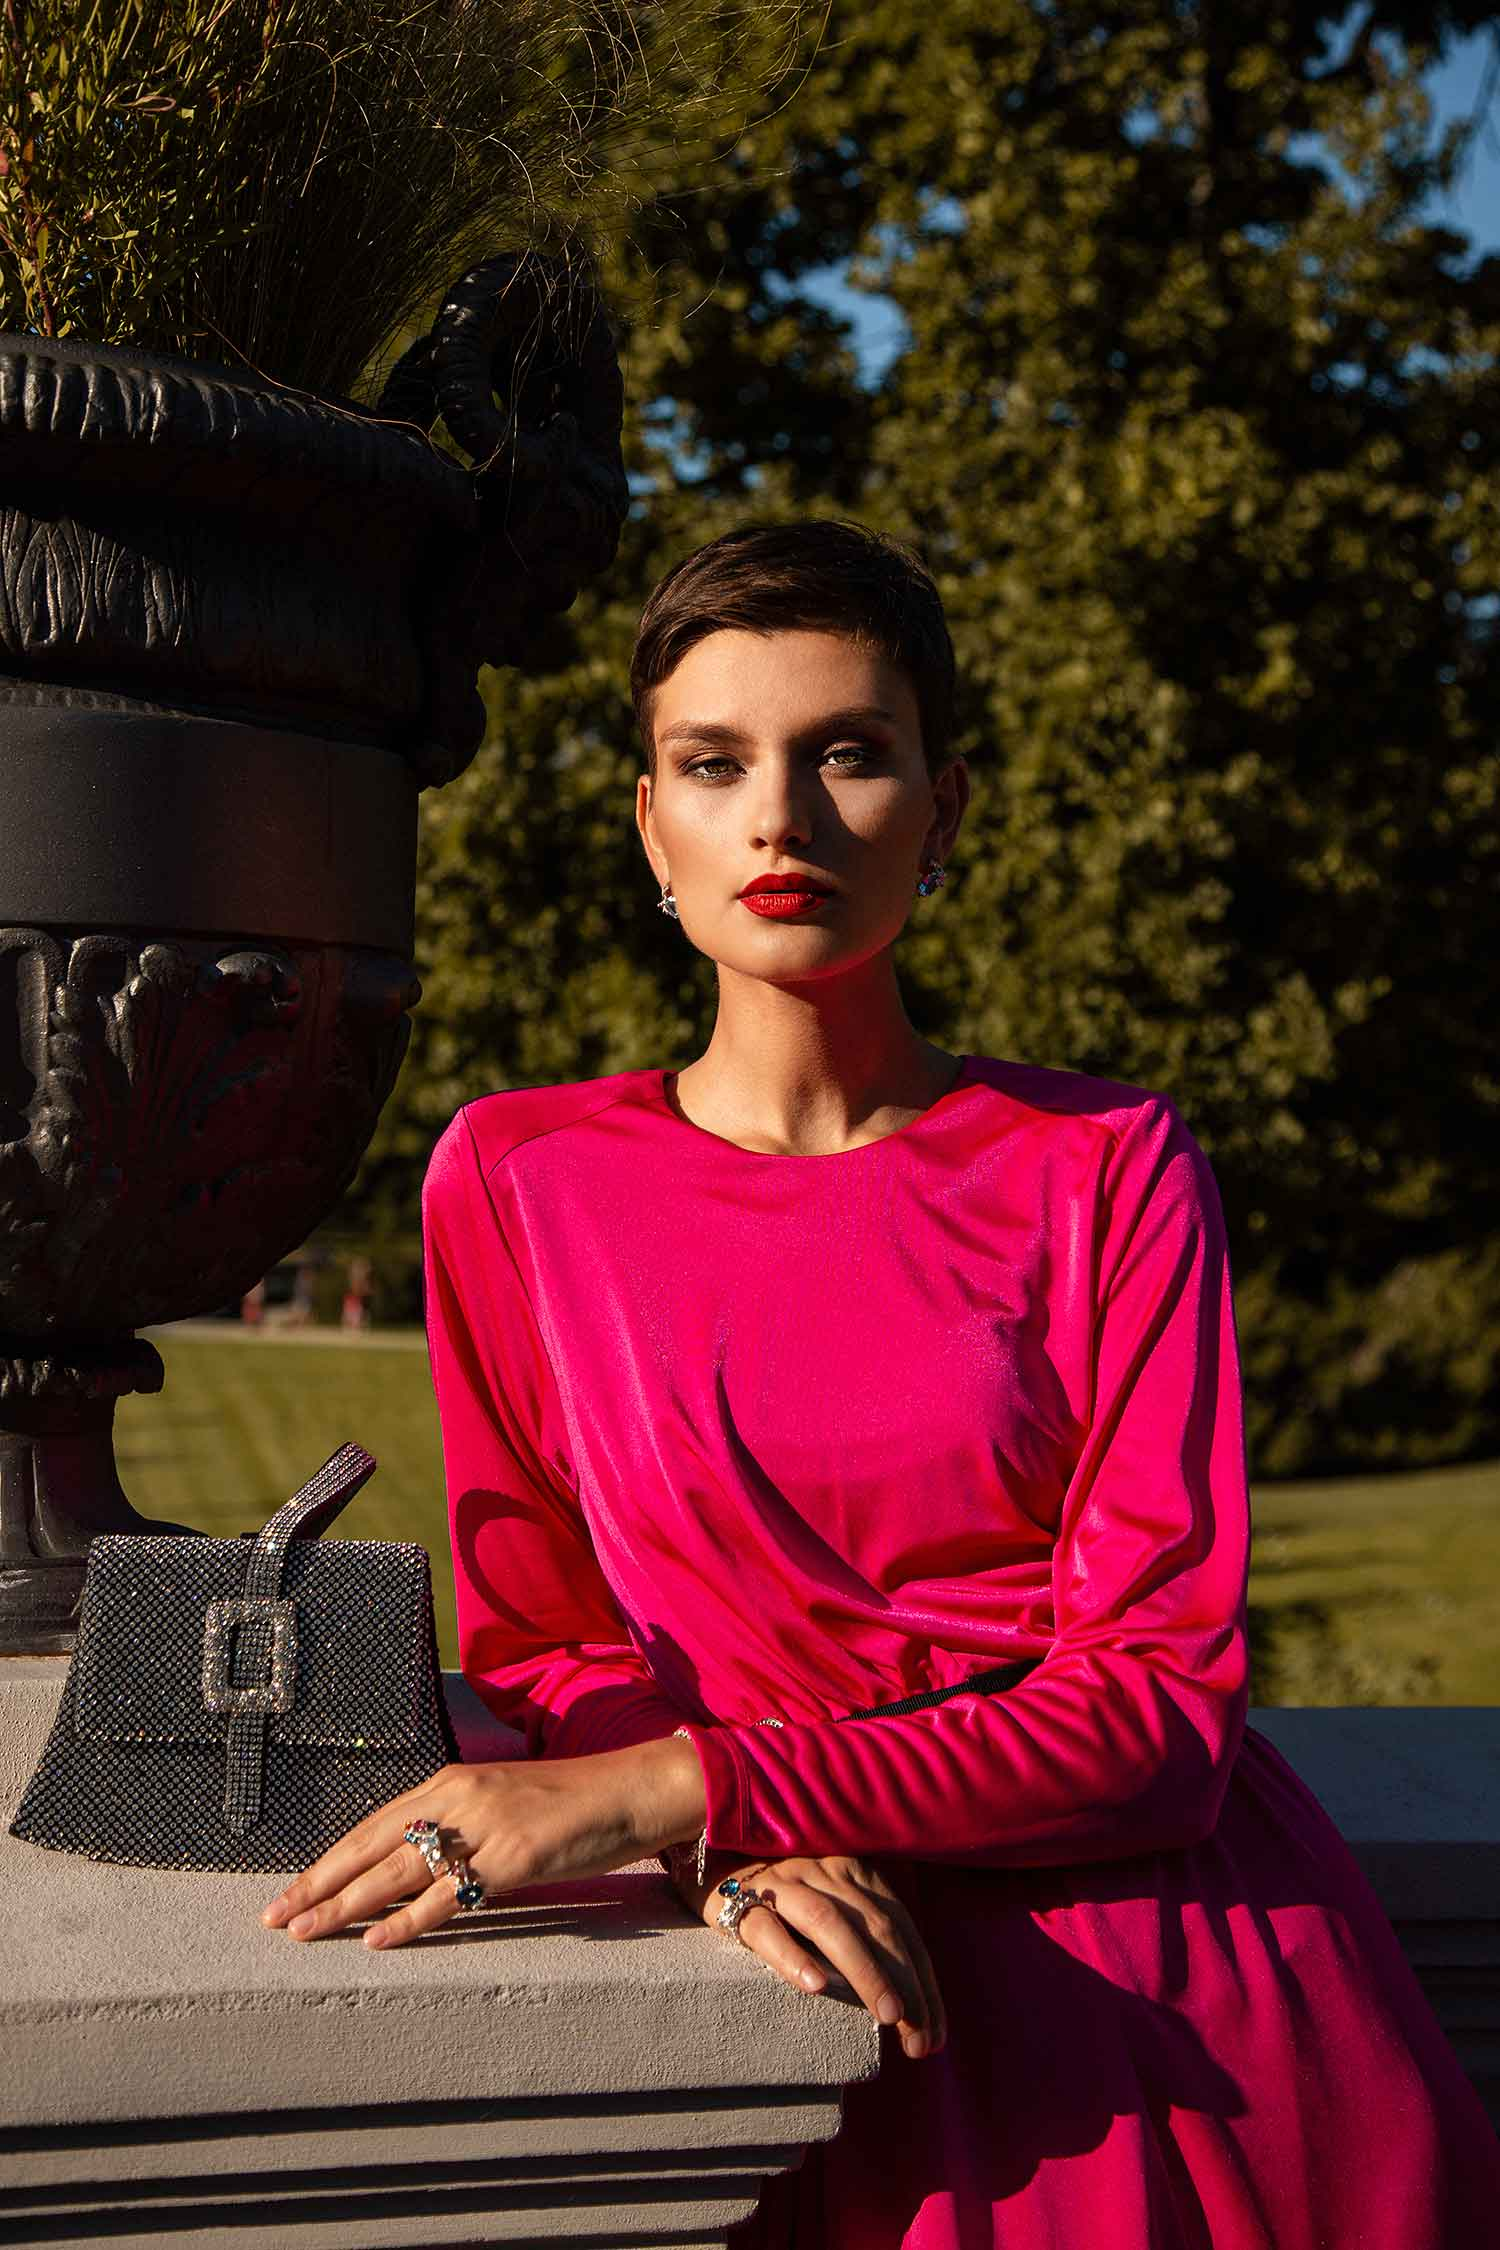 Model outdoors in pink vintage dress, wearing red lipstick and Zydrune statement jewellery.